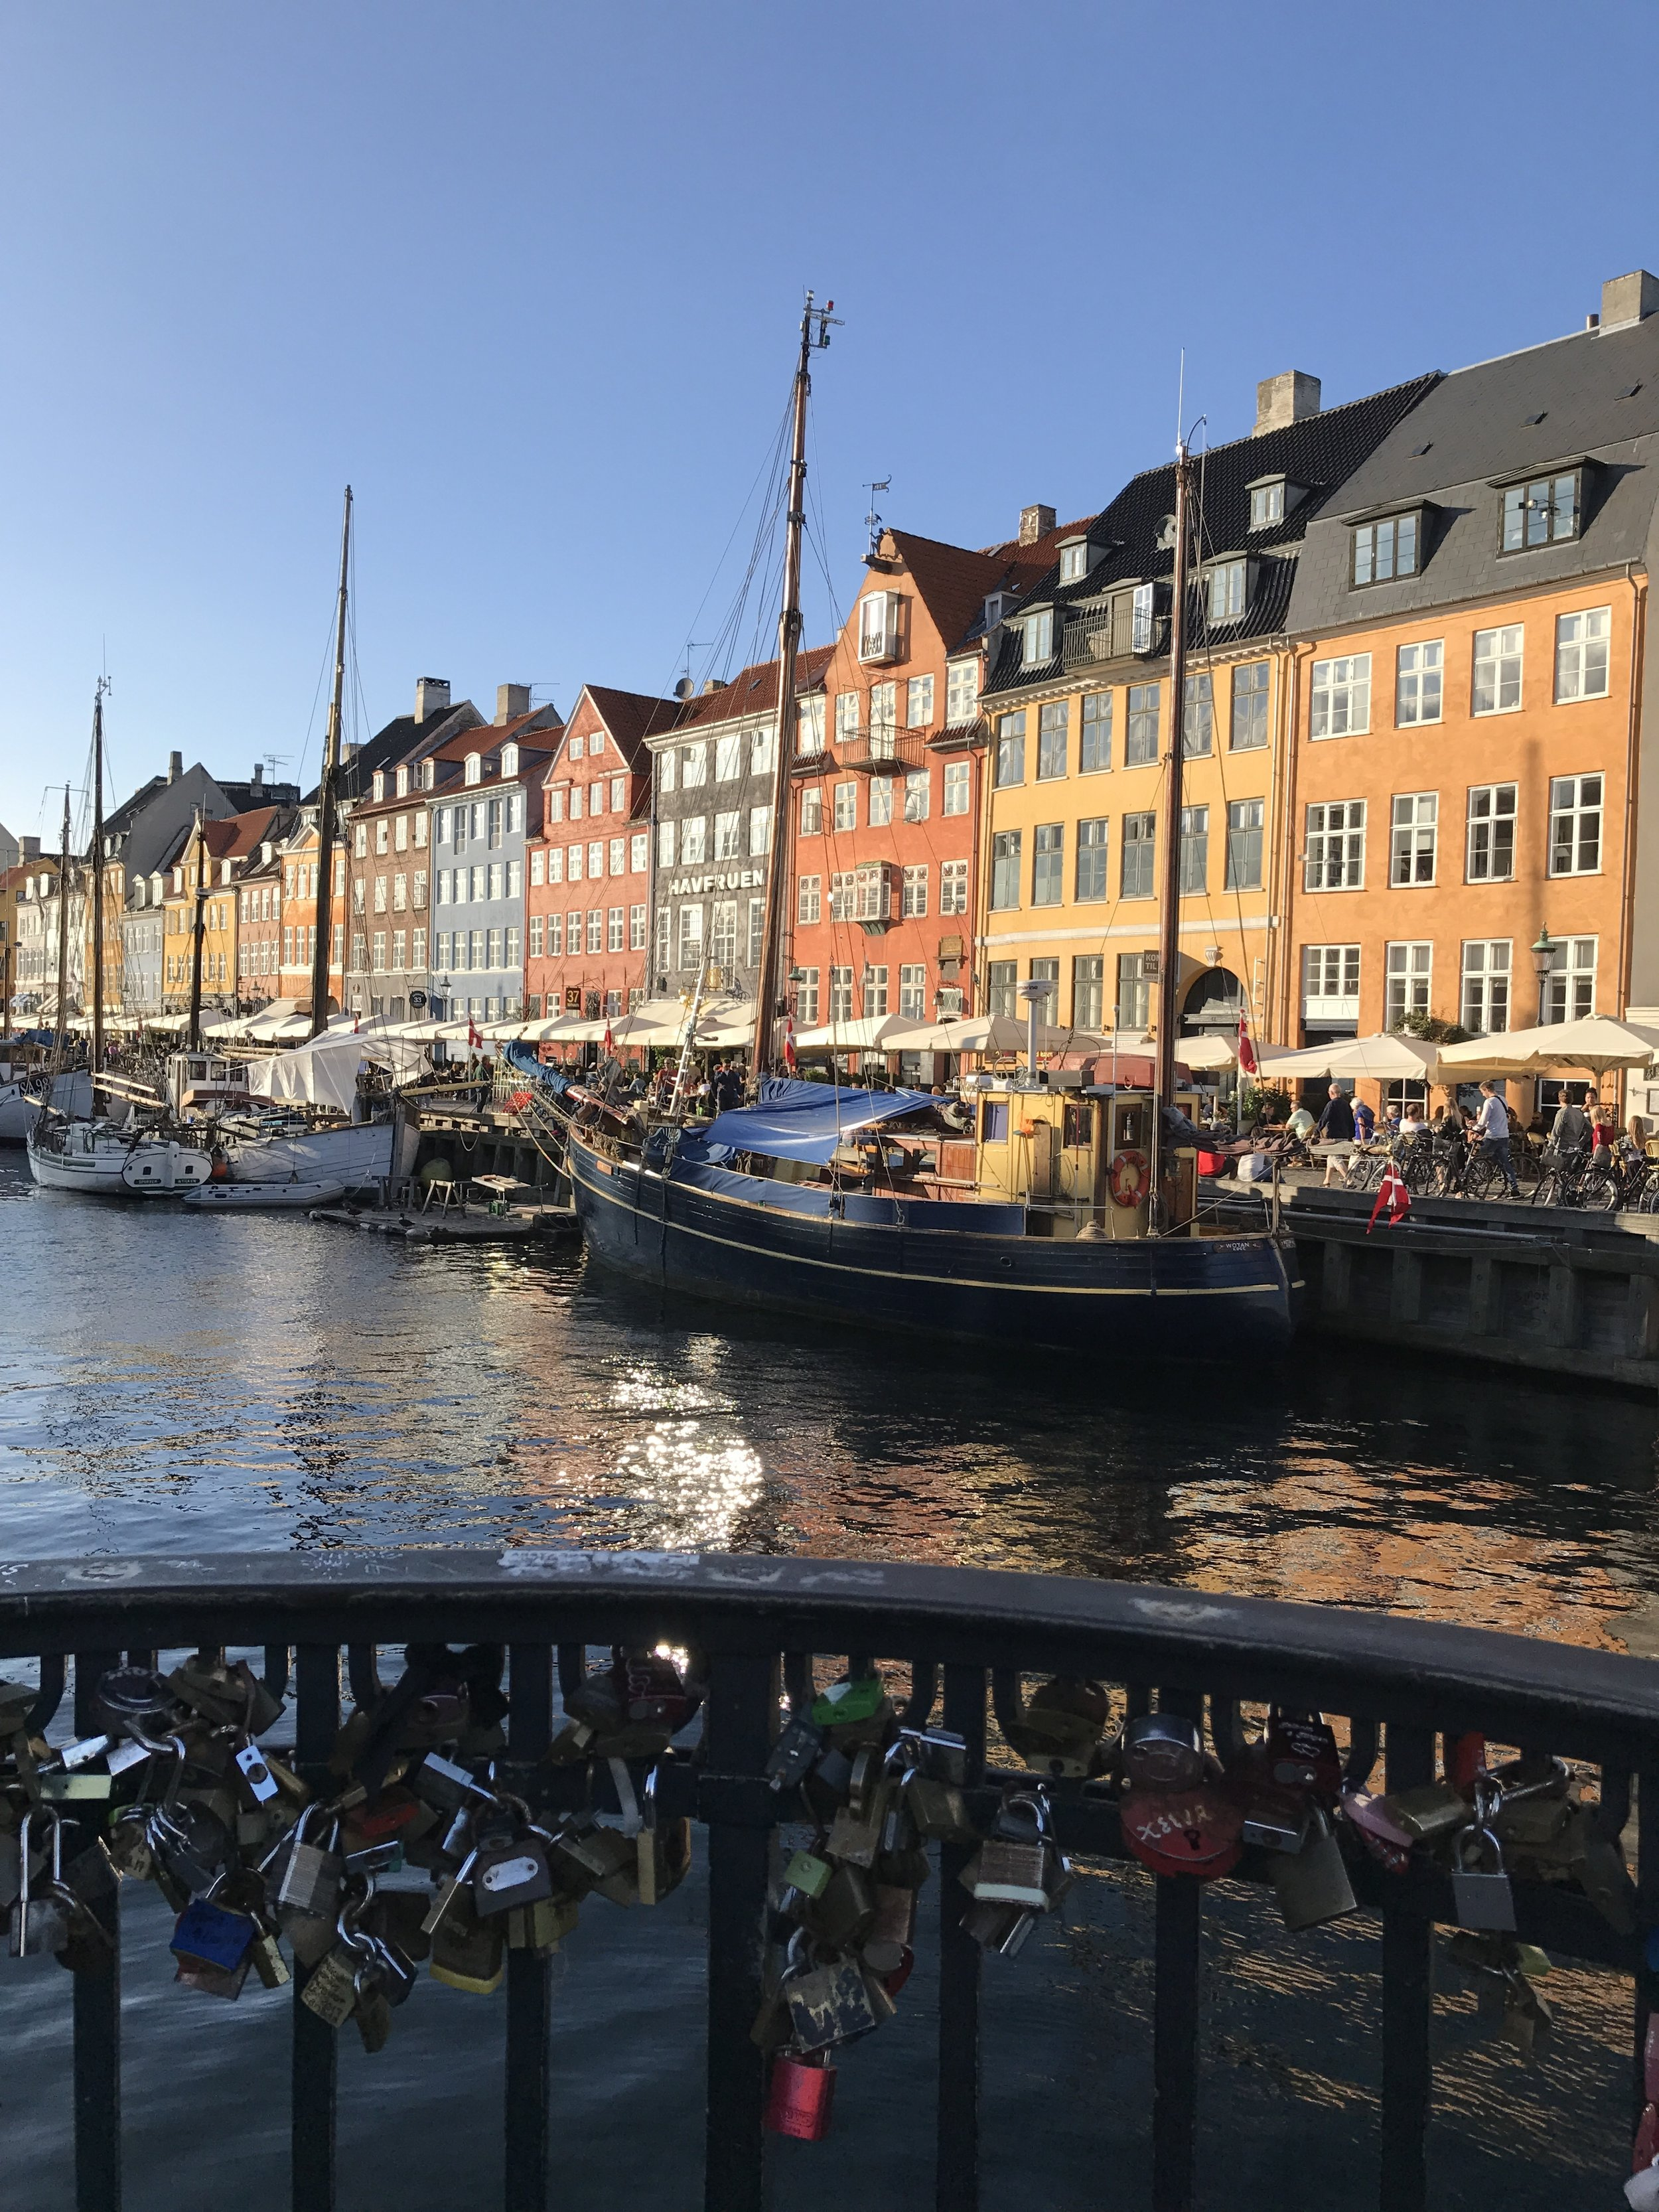 If you still need a reason to visit, you should know that Denmark is ranked as the happiest country on the globe.